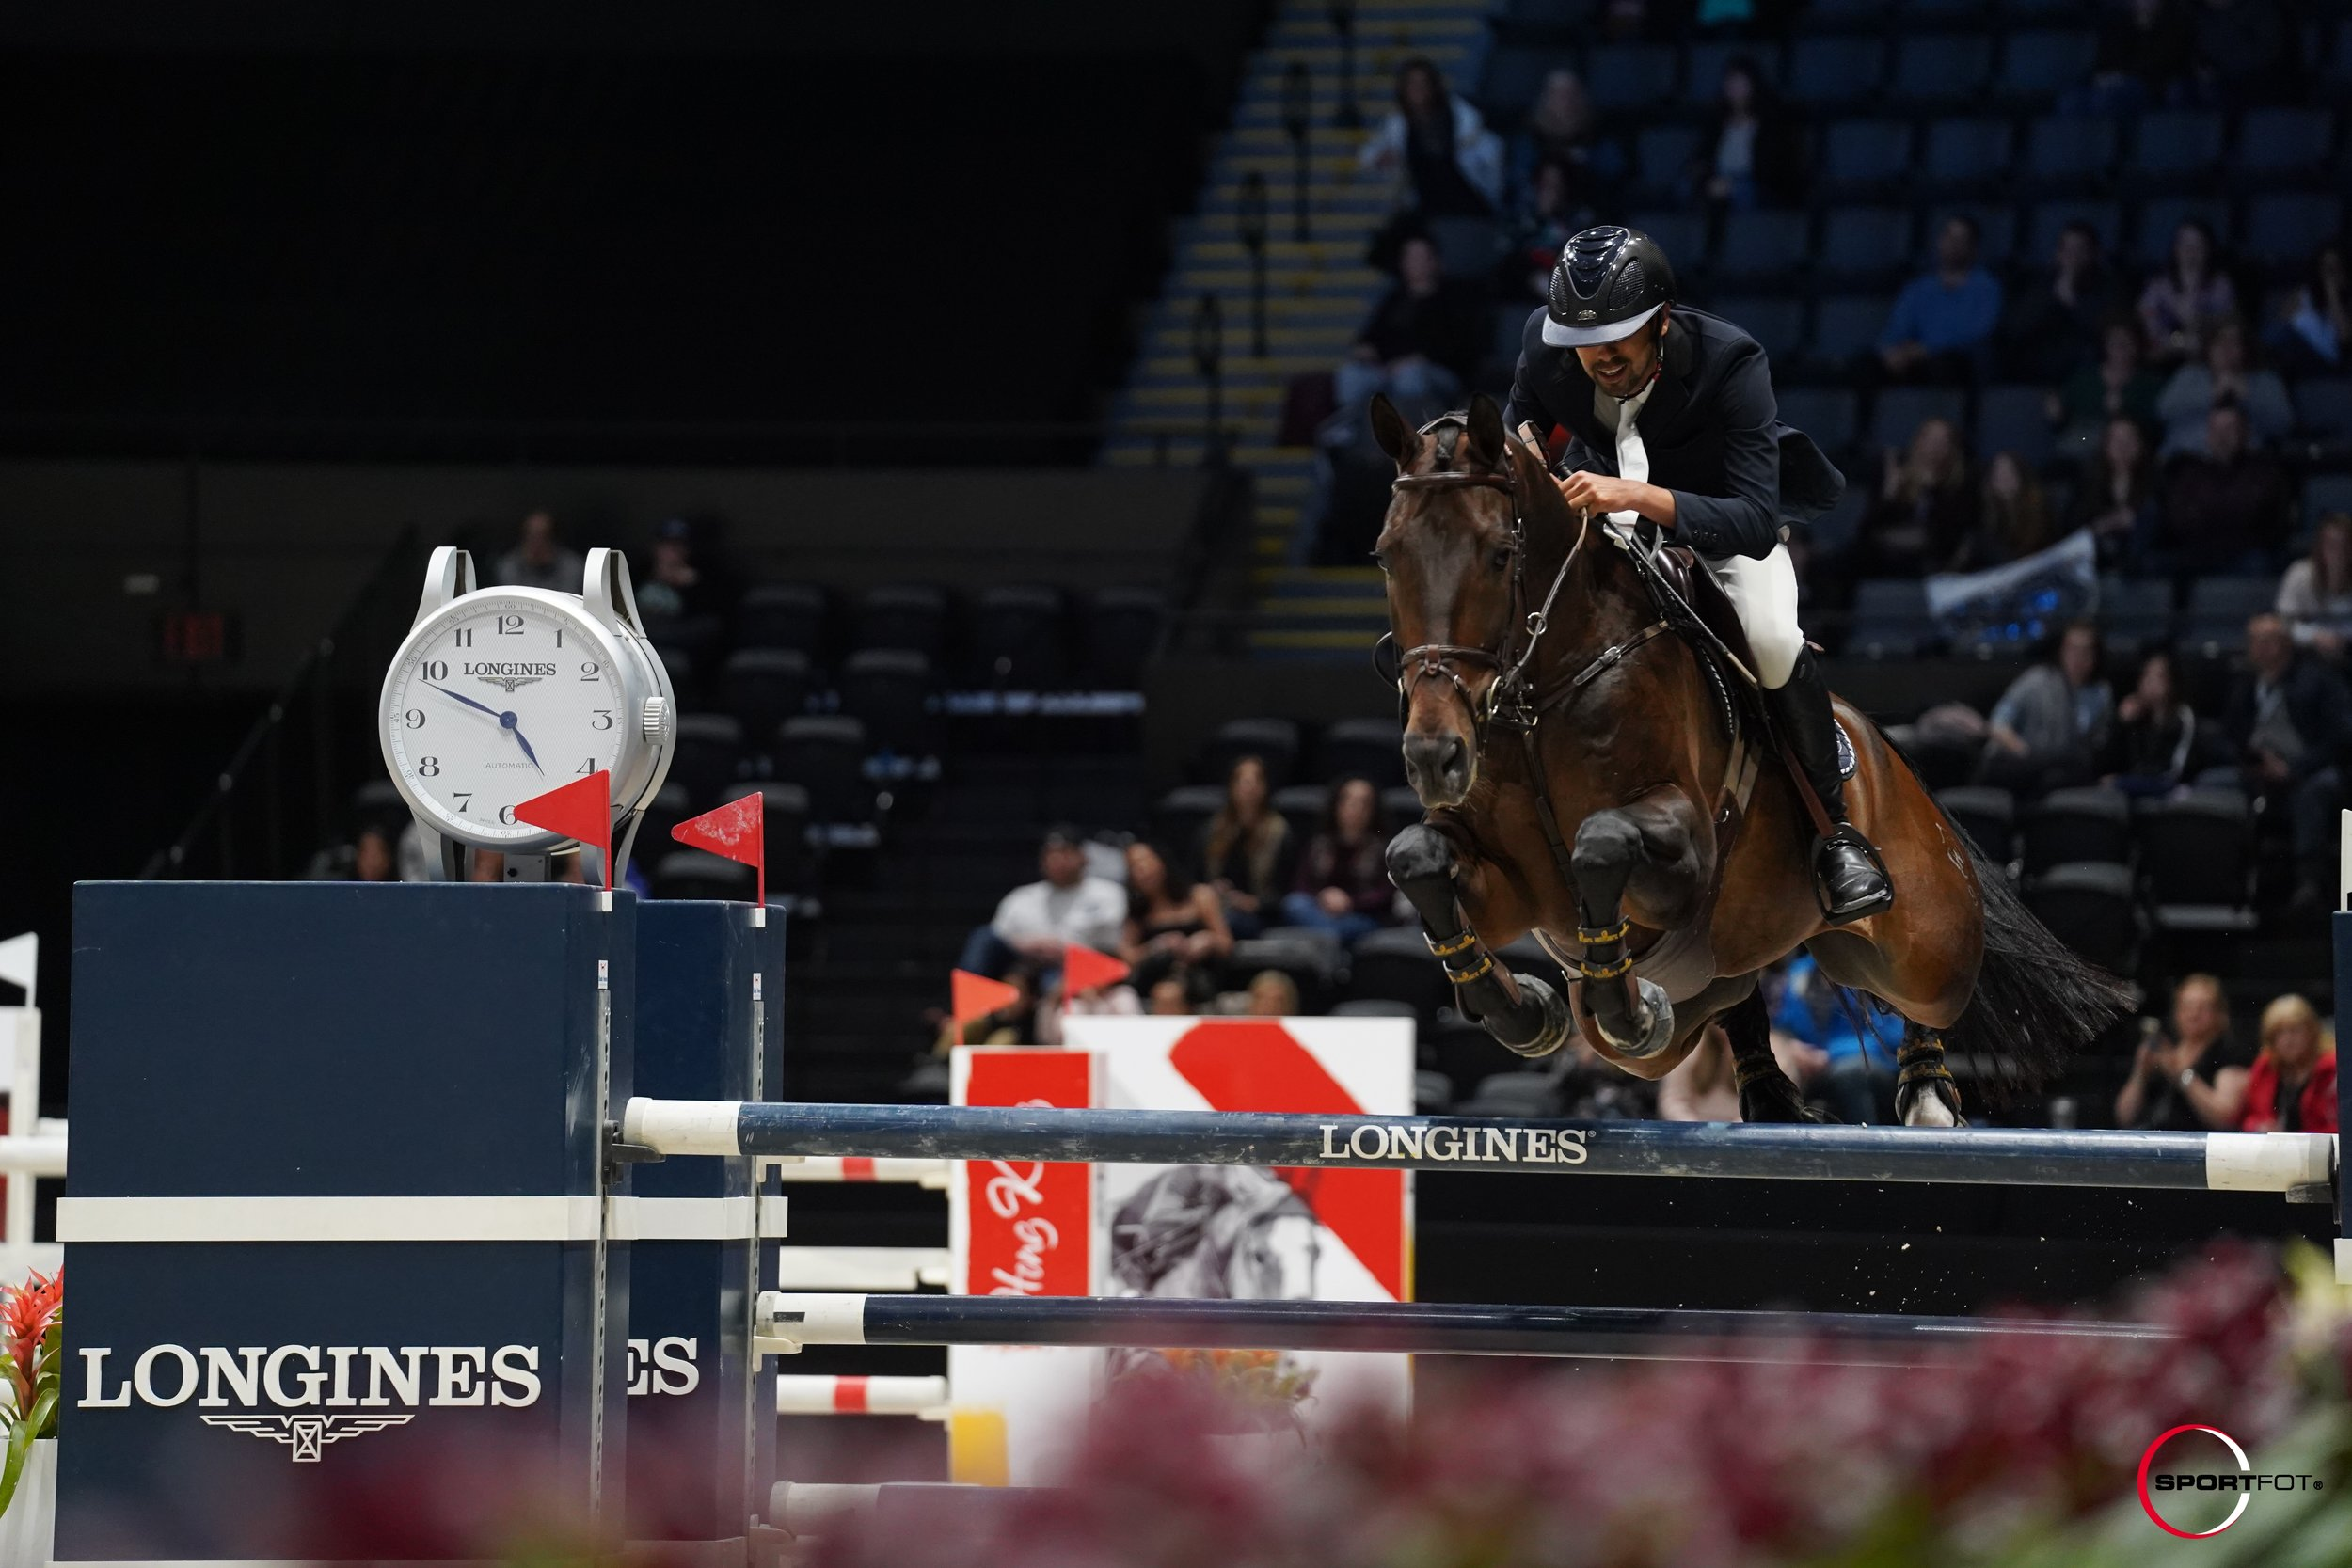 Nayel Nassar and Lucifer V at Longines Masters of New York 2019. Photo by Sportfot.